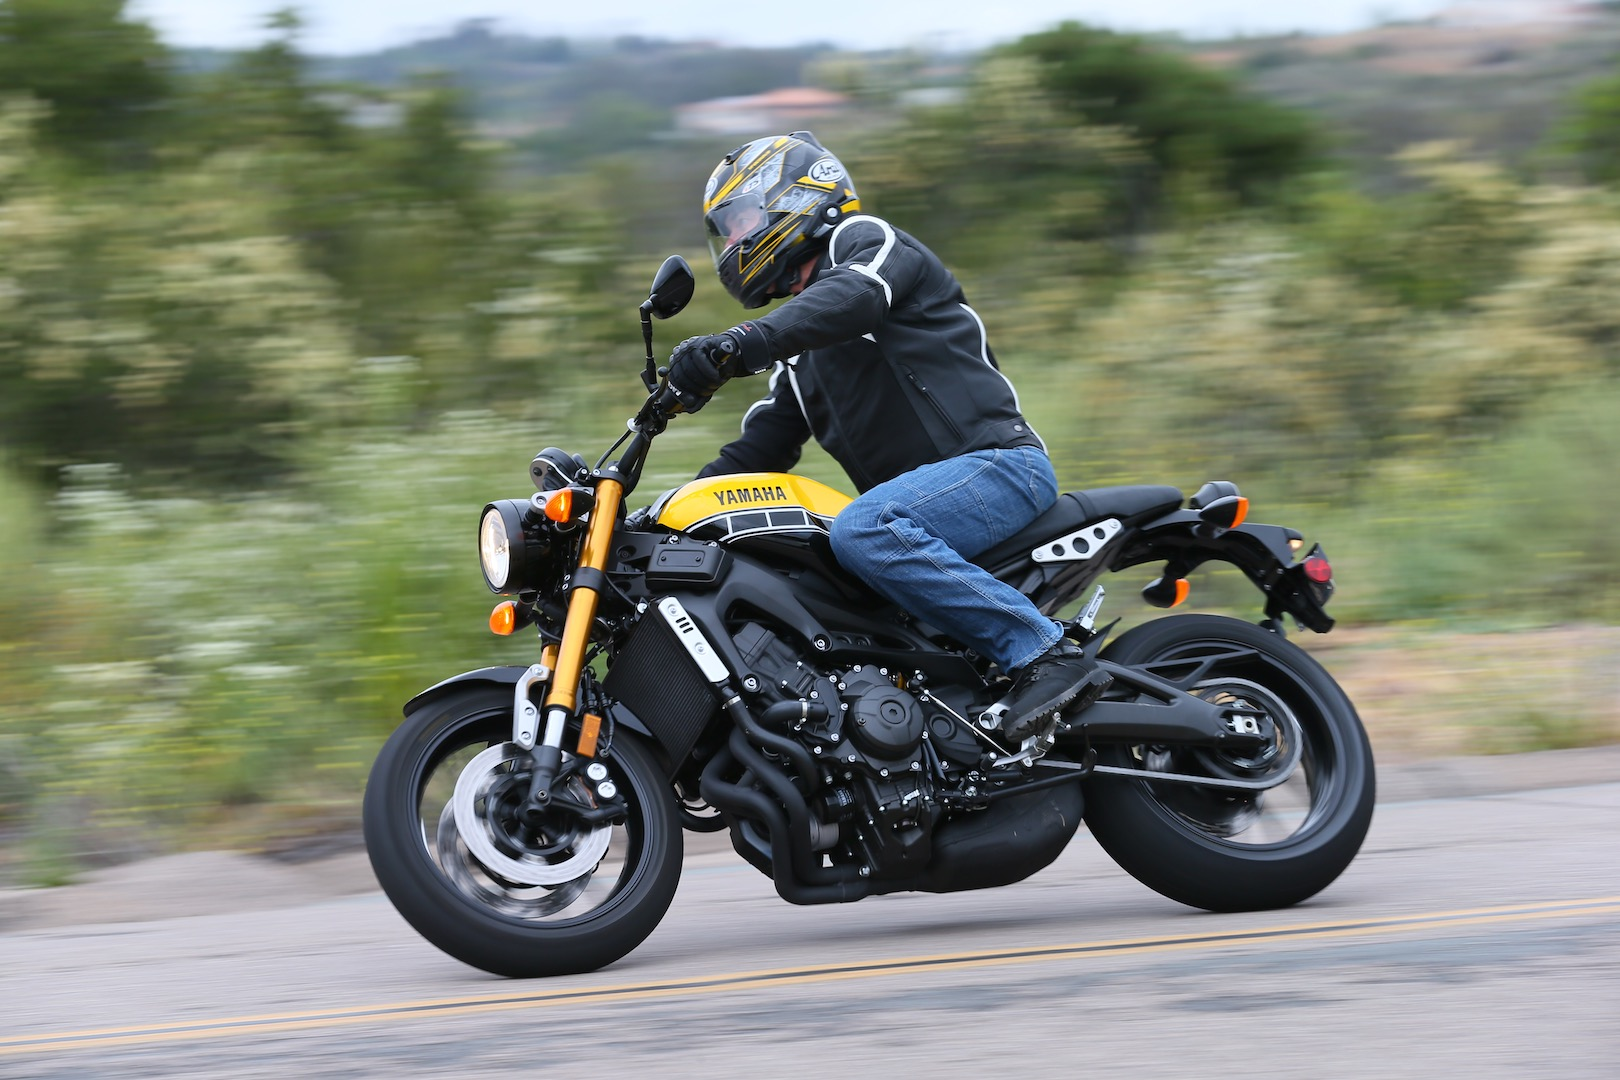 Yamaha XSR900, an Ultimate Motorcycling Top 25 Bike of 2016